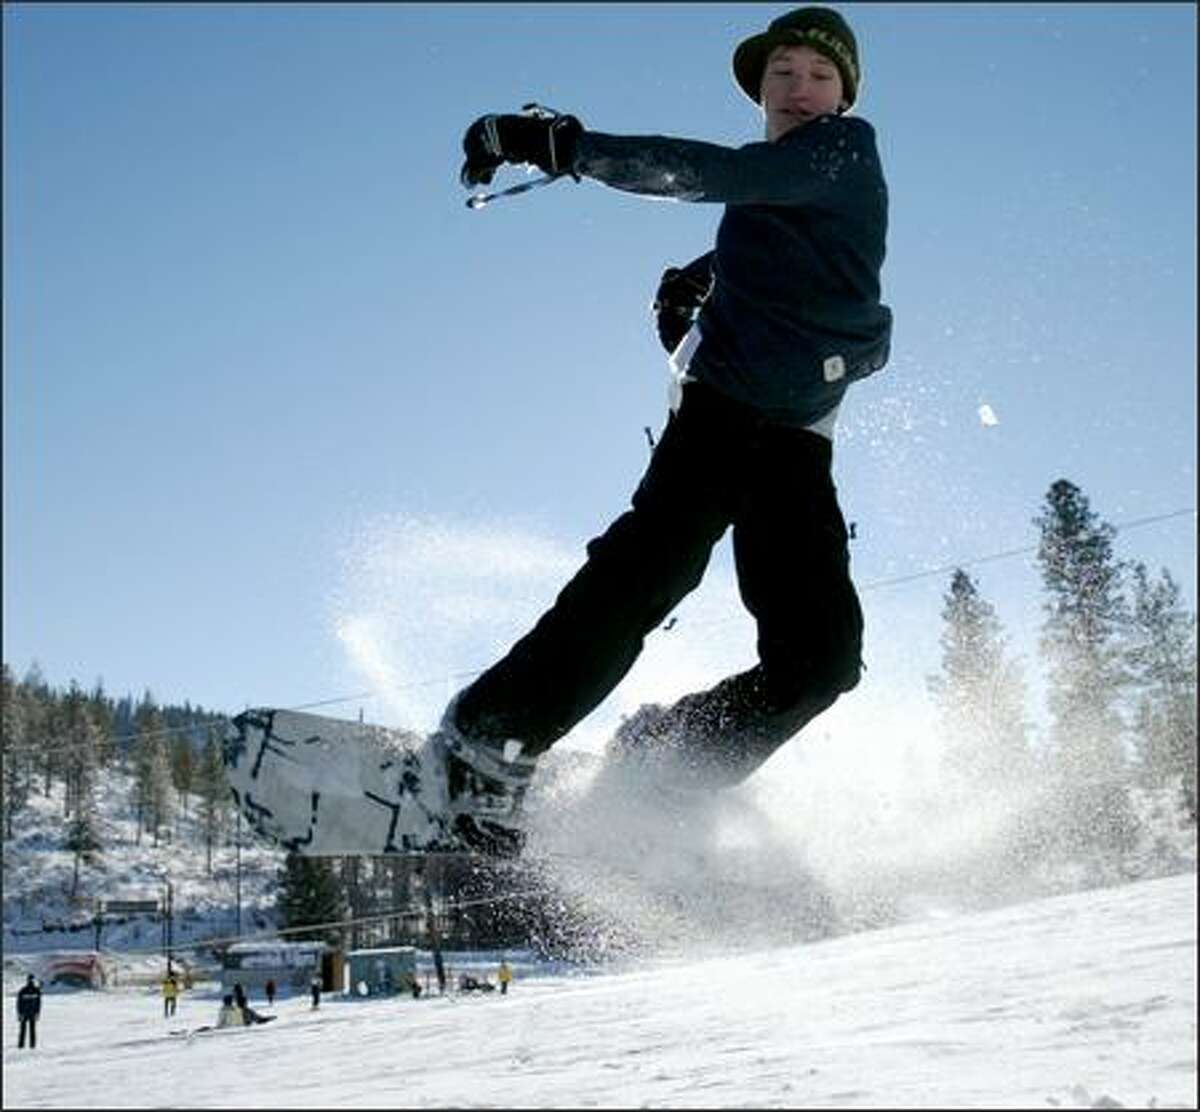 Mark Peterson, 14, of Chelan, performs a jump at Echo Valley Ski Aread near Chelan.